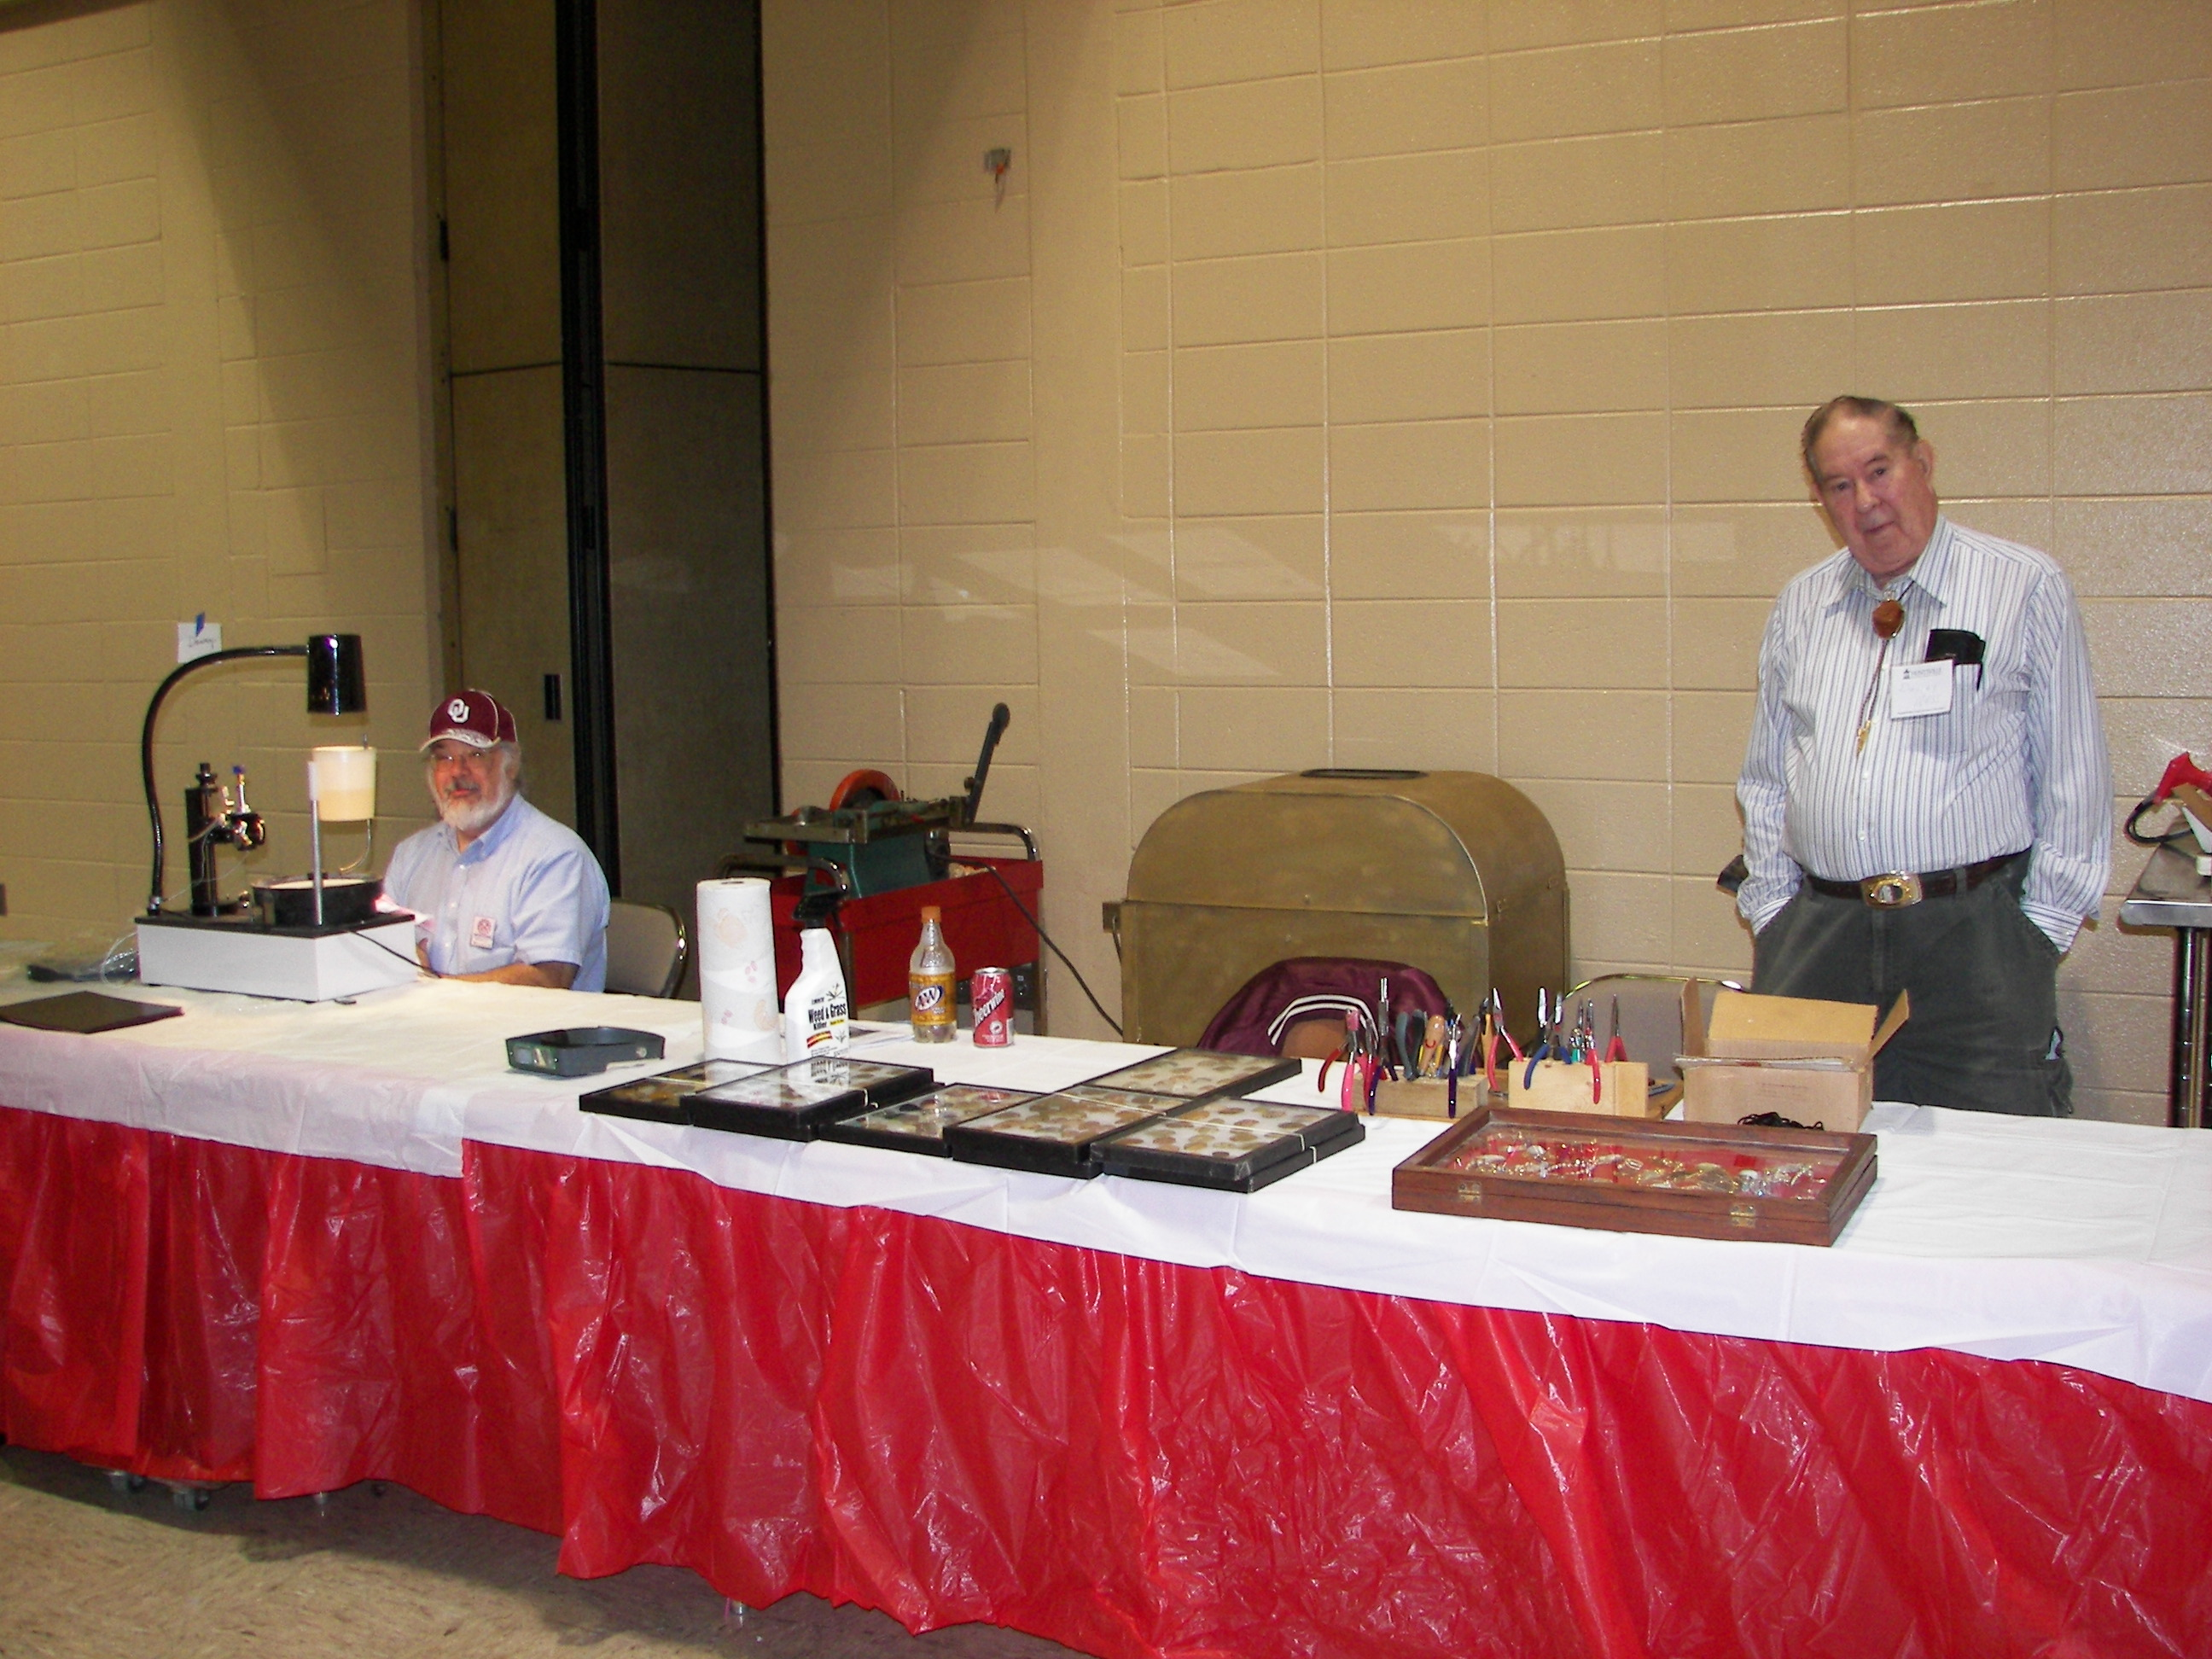 gemstone faceting at the Huntsville Gem, Jewelry and Mineral Show